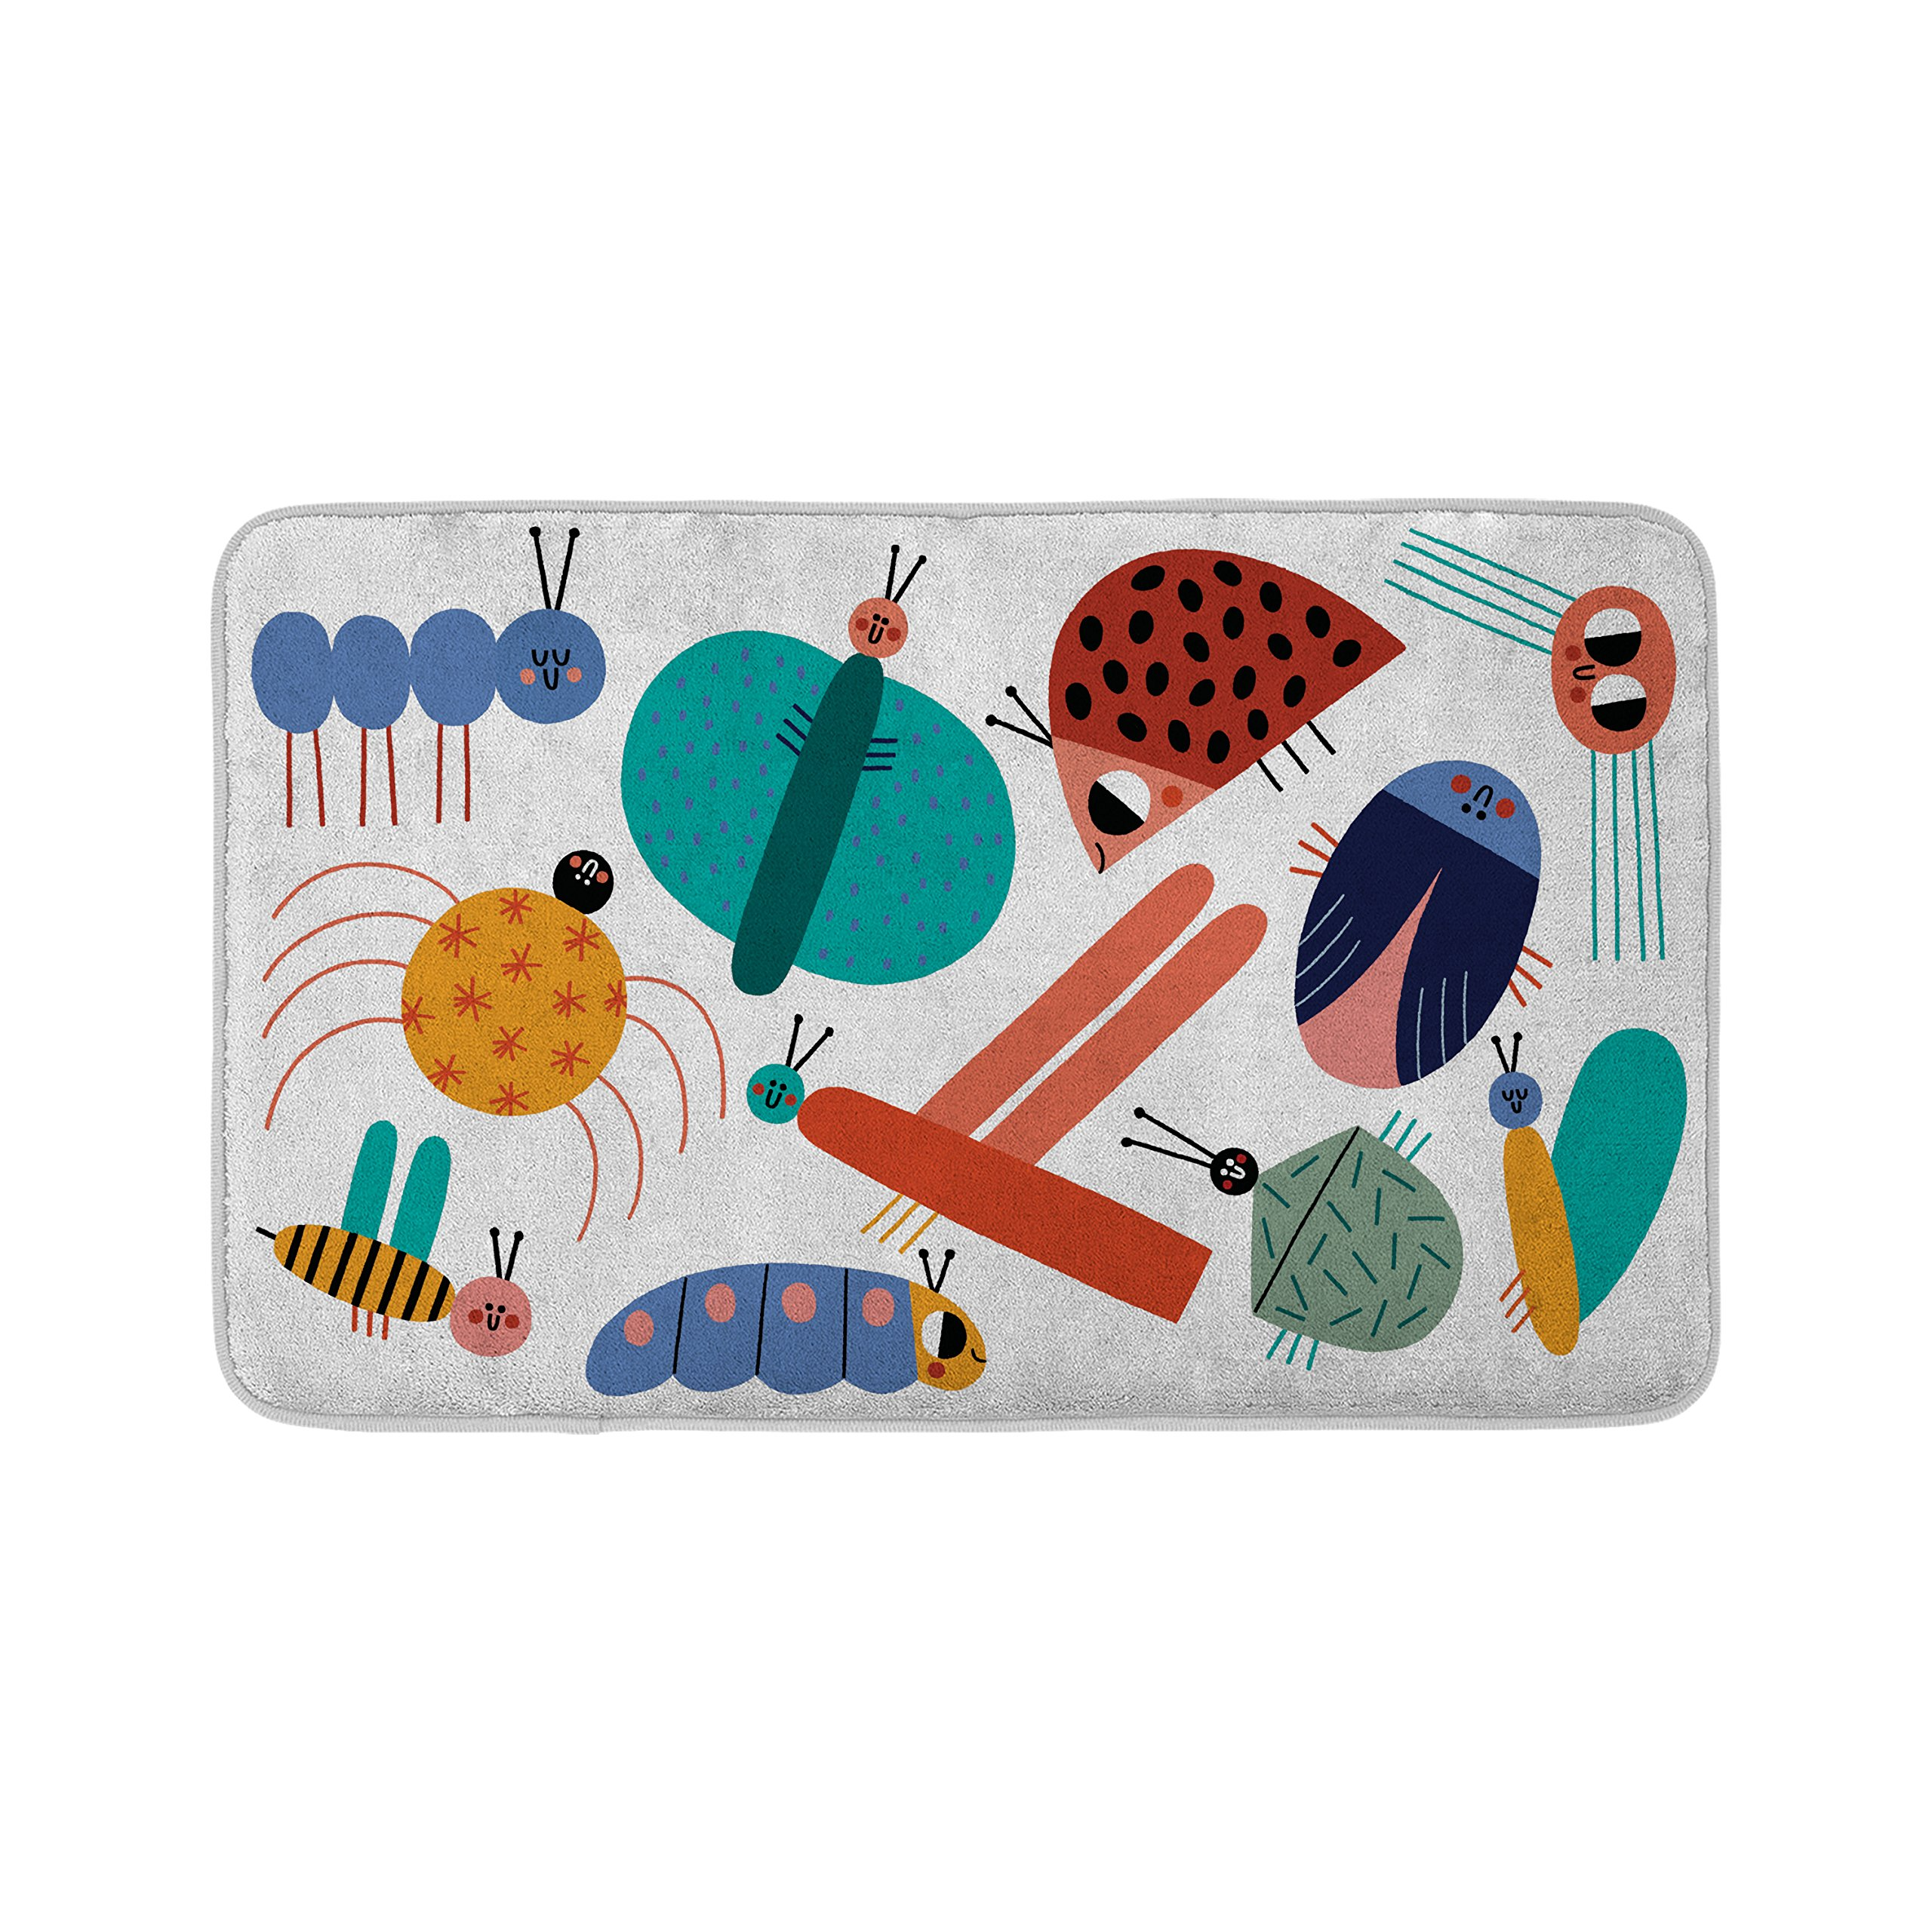 Mouse + Magpie Bath Mat, Skid-Proof, Memory Foam, Soft, Quick-Dry Microfiber, 31''x19'' for Toddler, Kid, Child Bathroom, Little Bugs World by Mouse + Magpie (Image #1)